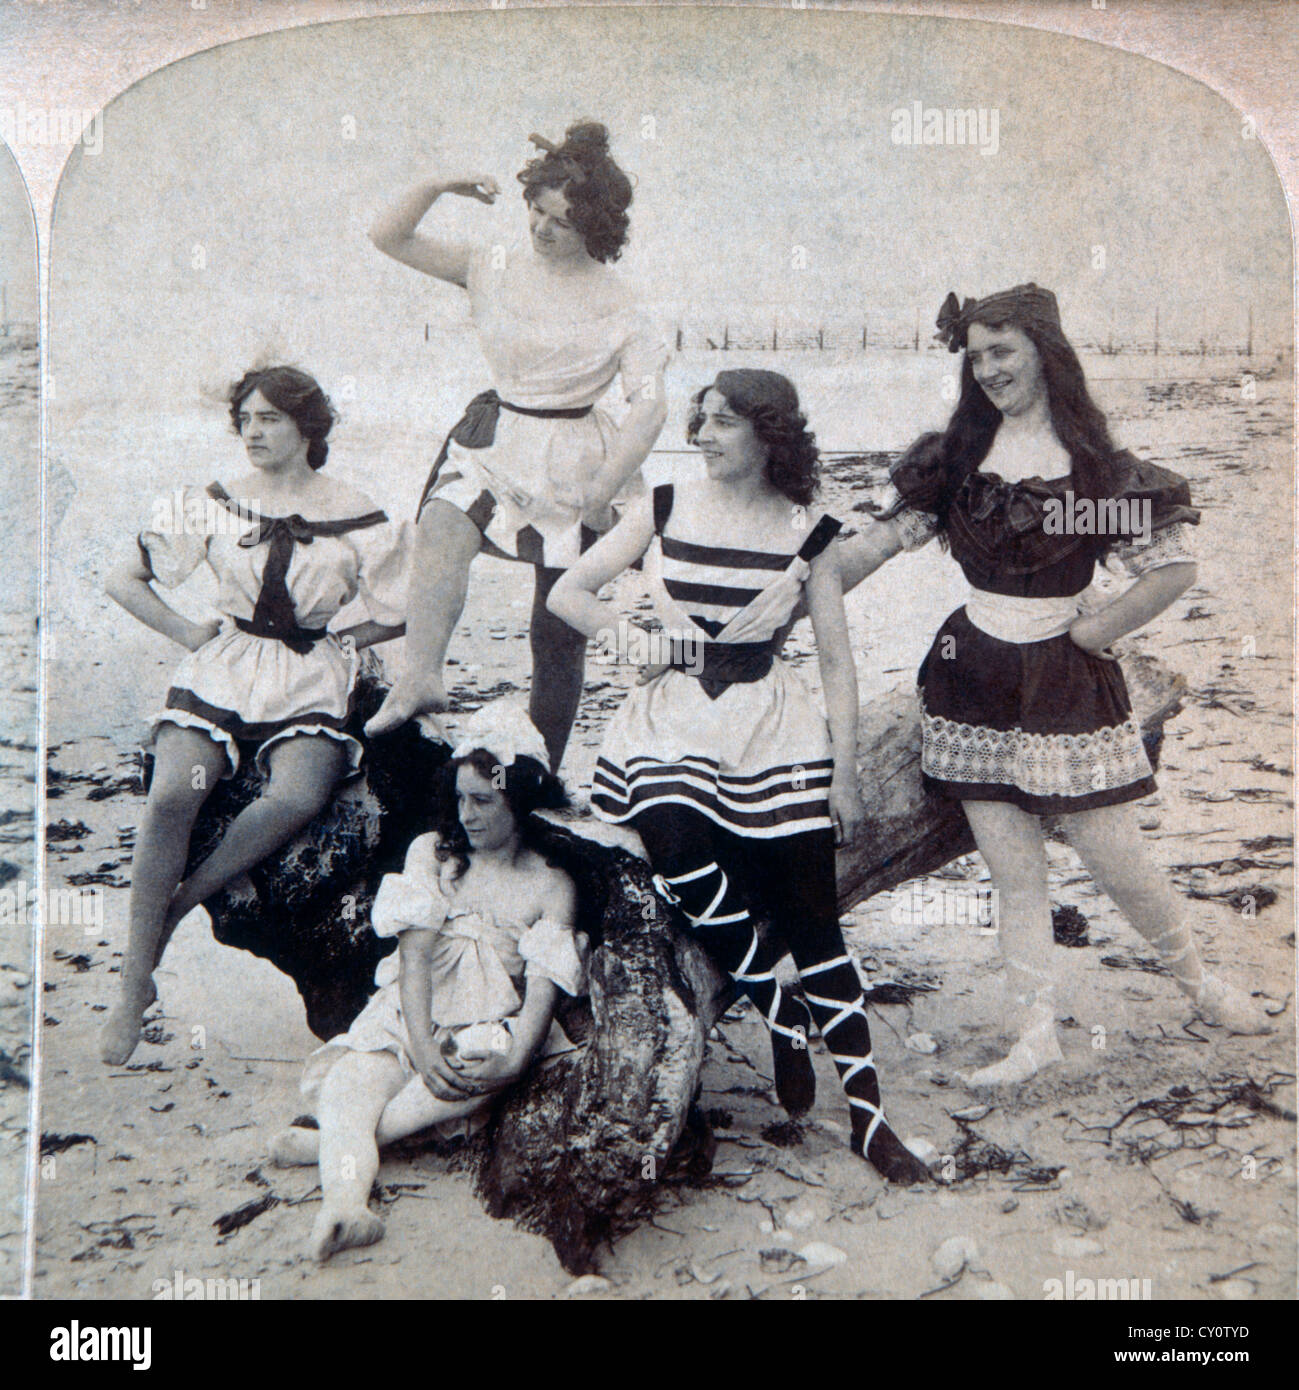 Five Women at Beach USA, Stereo Albumen Photograph, Circa 1897 - Stock Image